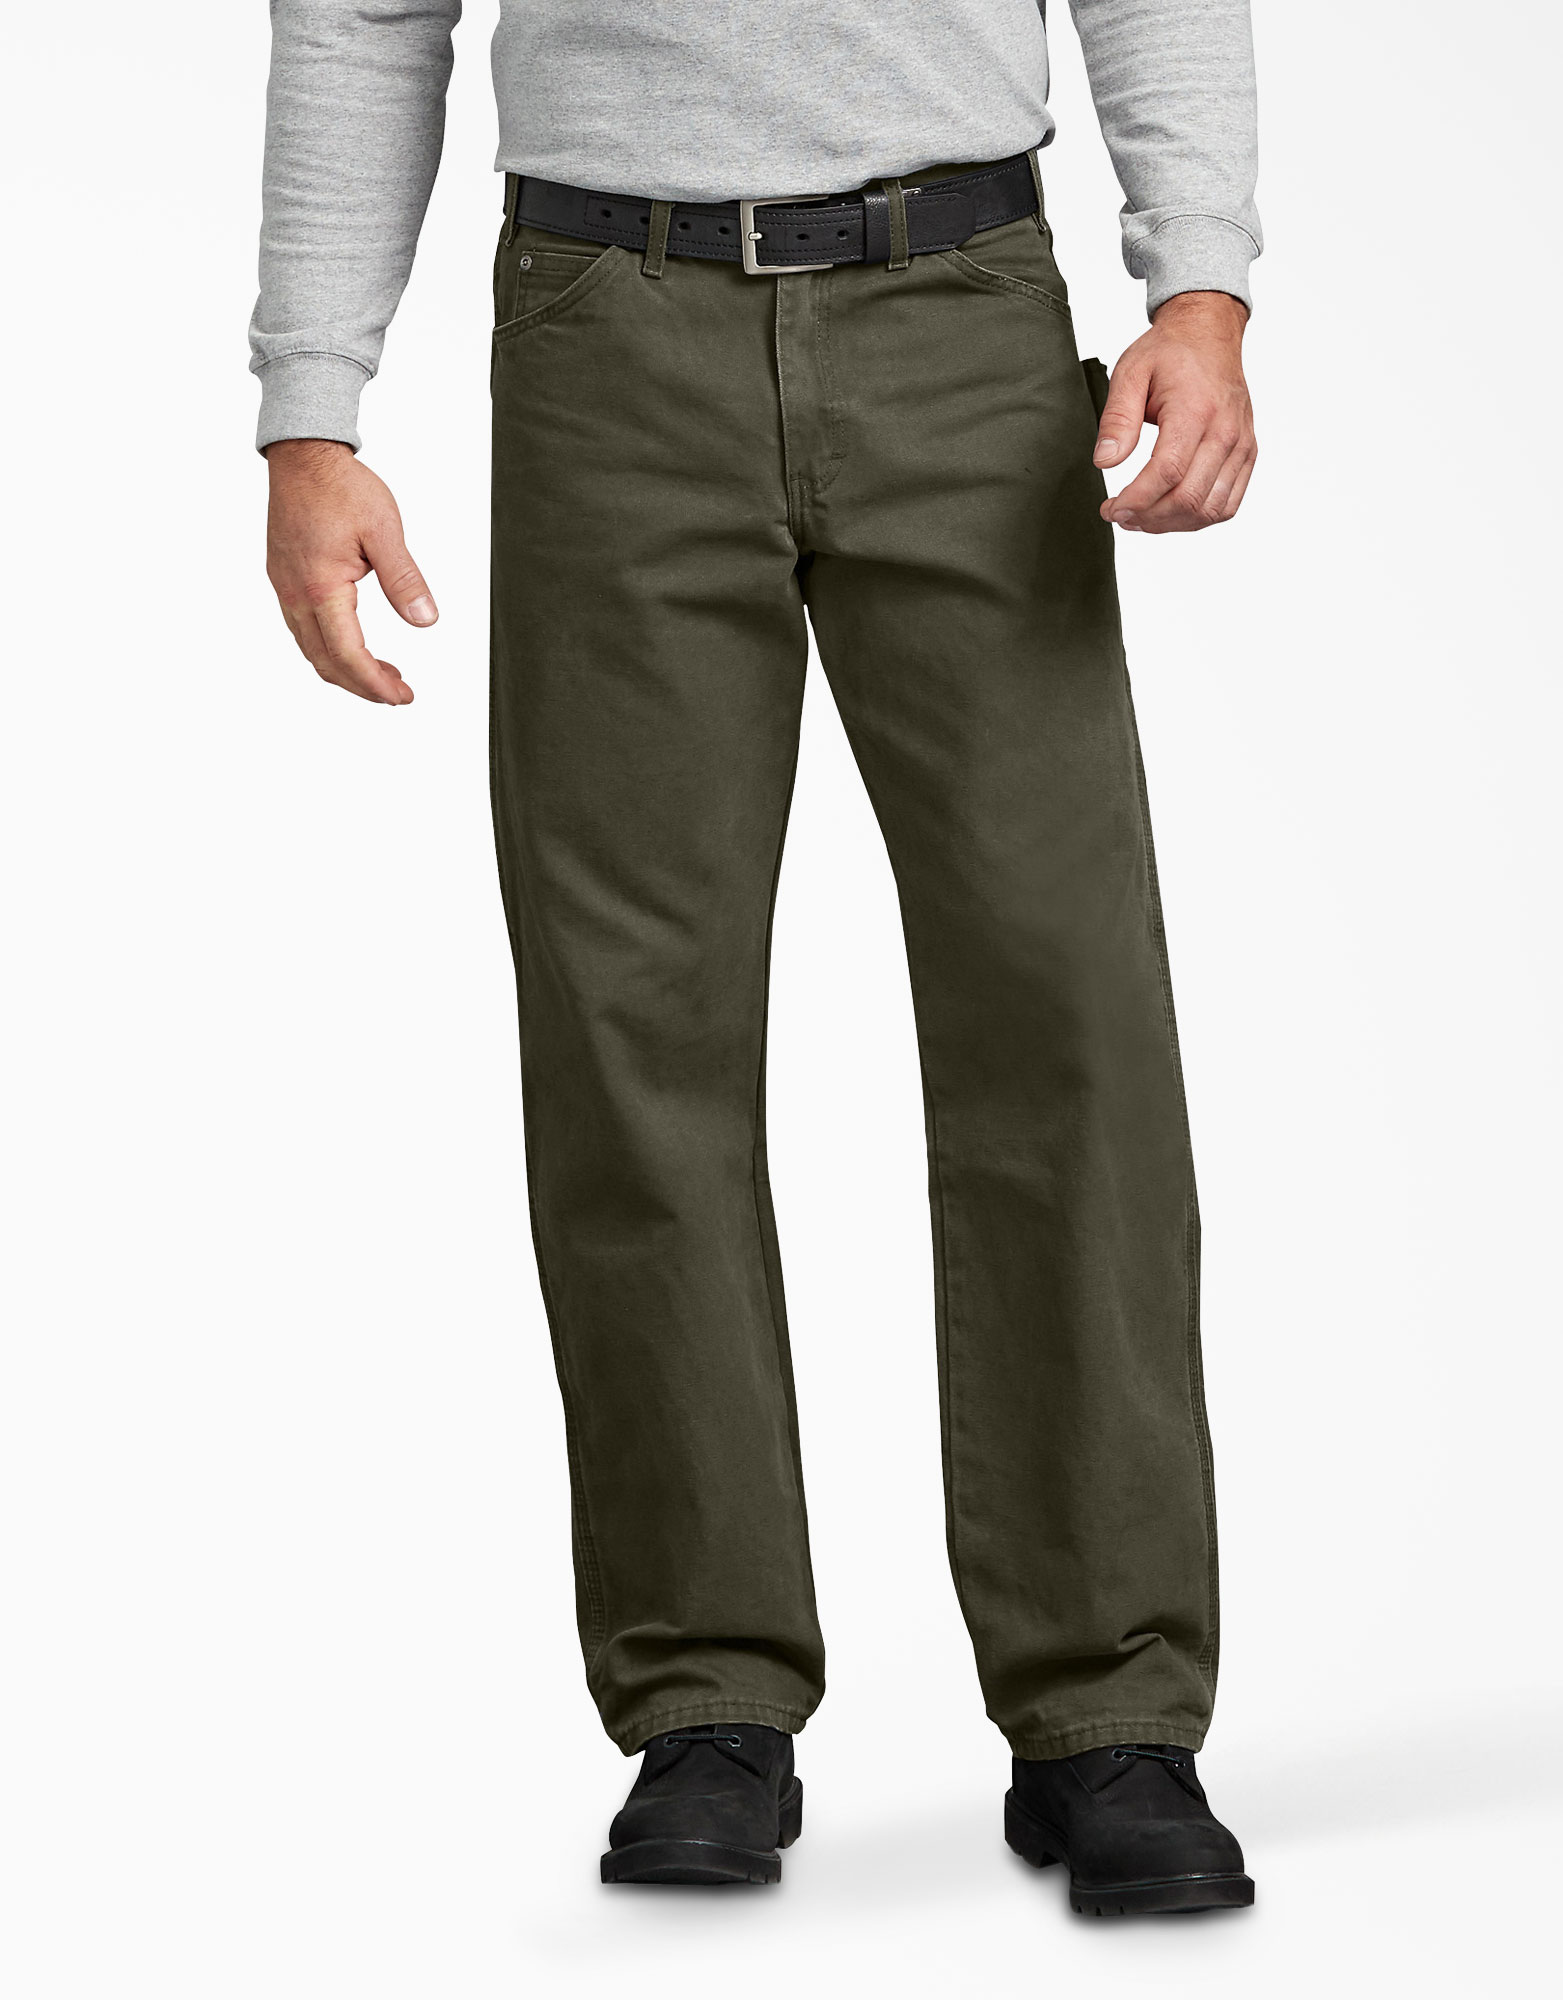 Relaxed Fit Straight Leg Carpenter Duck Jeans - Moss Green (RMS)